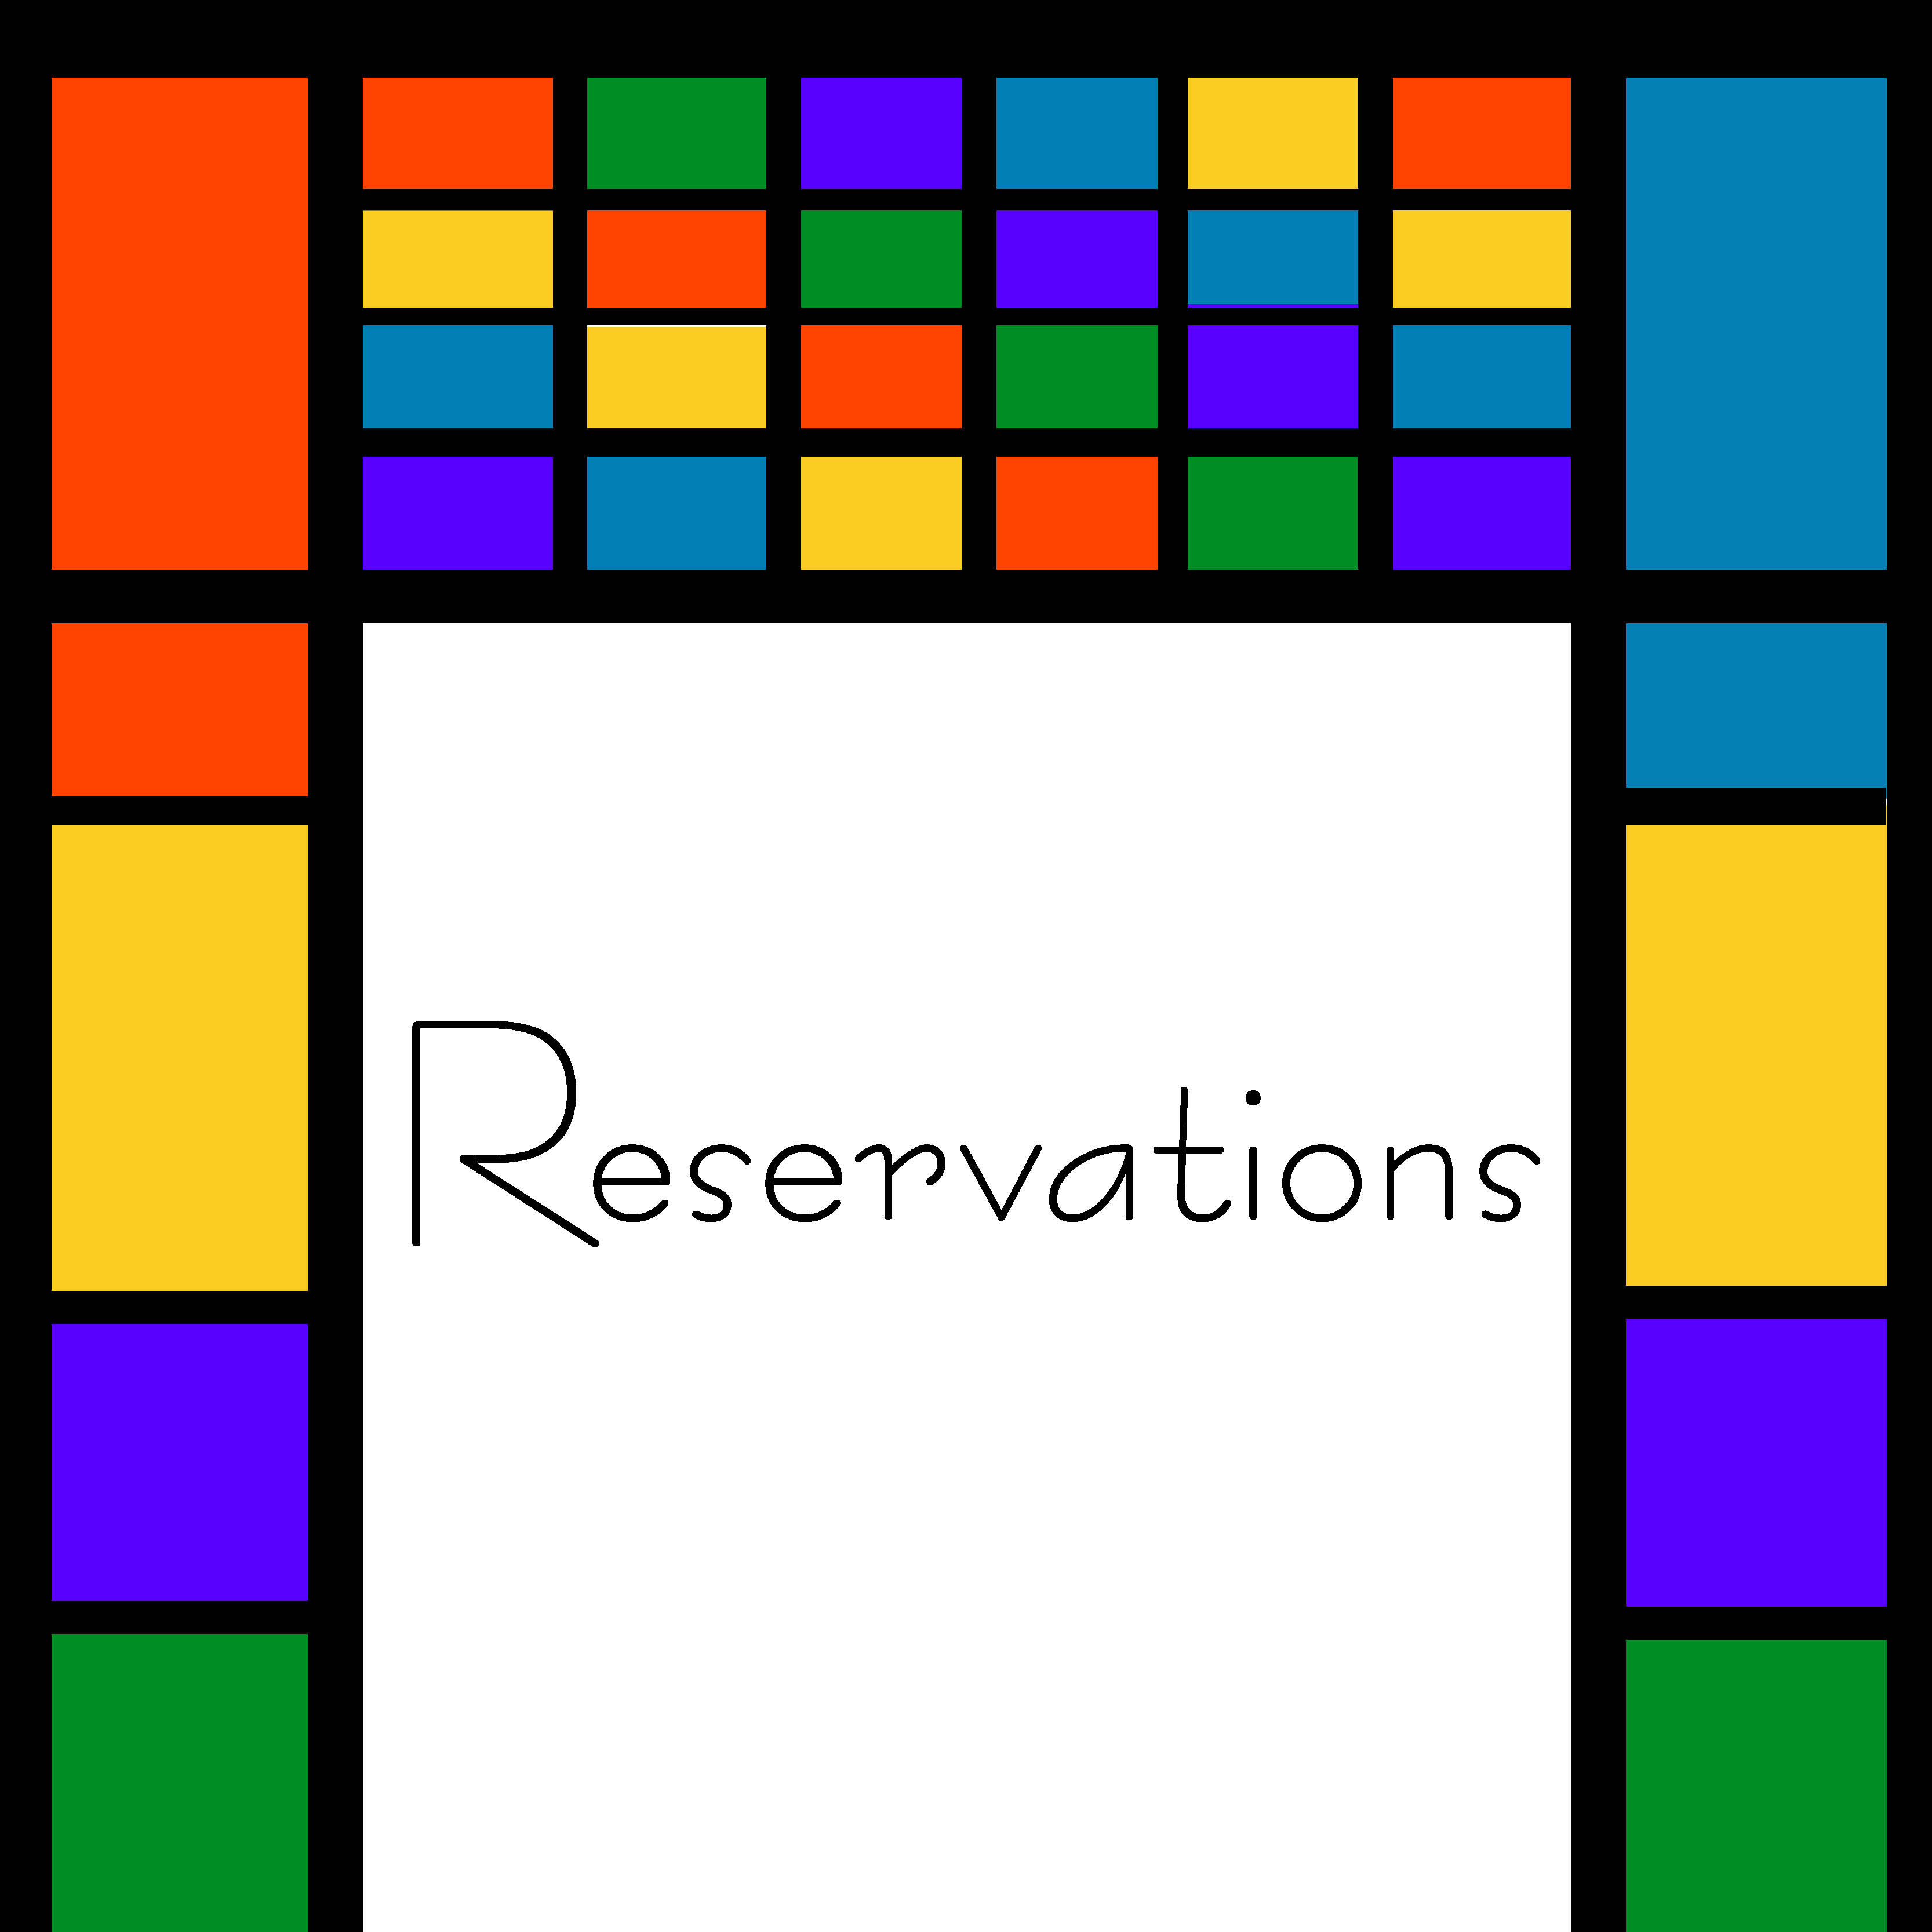 reservations website graphic